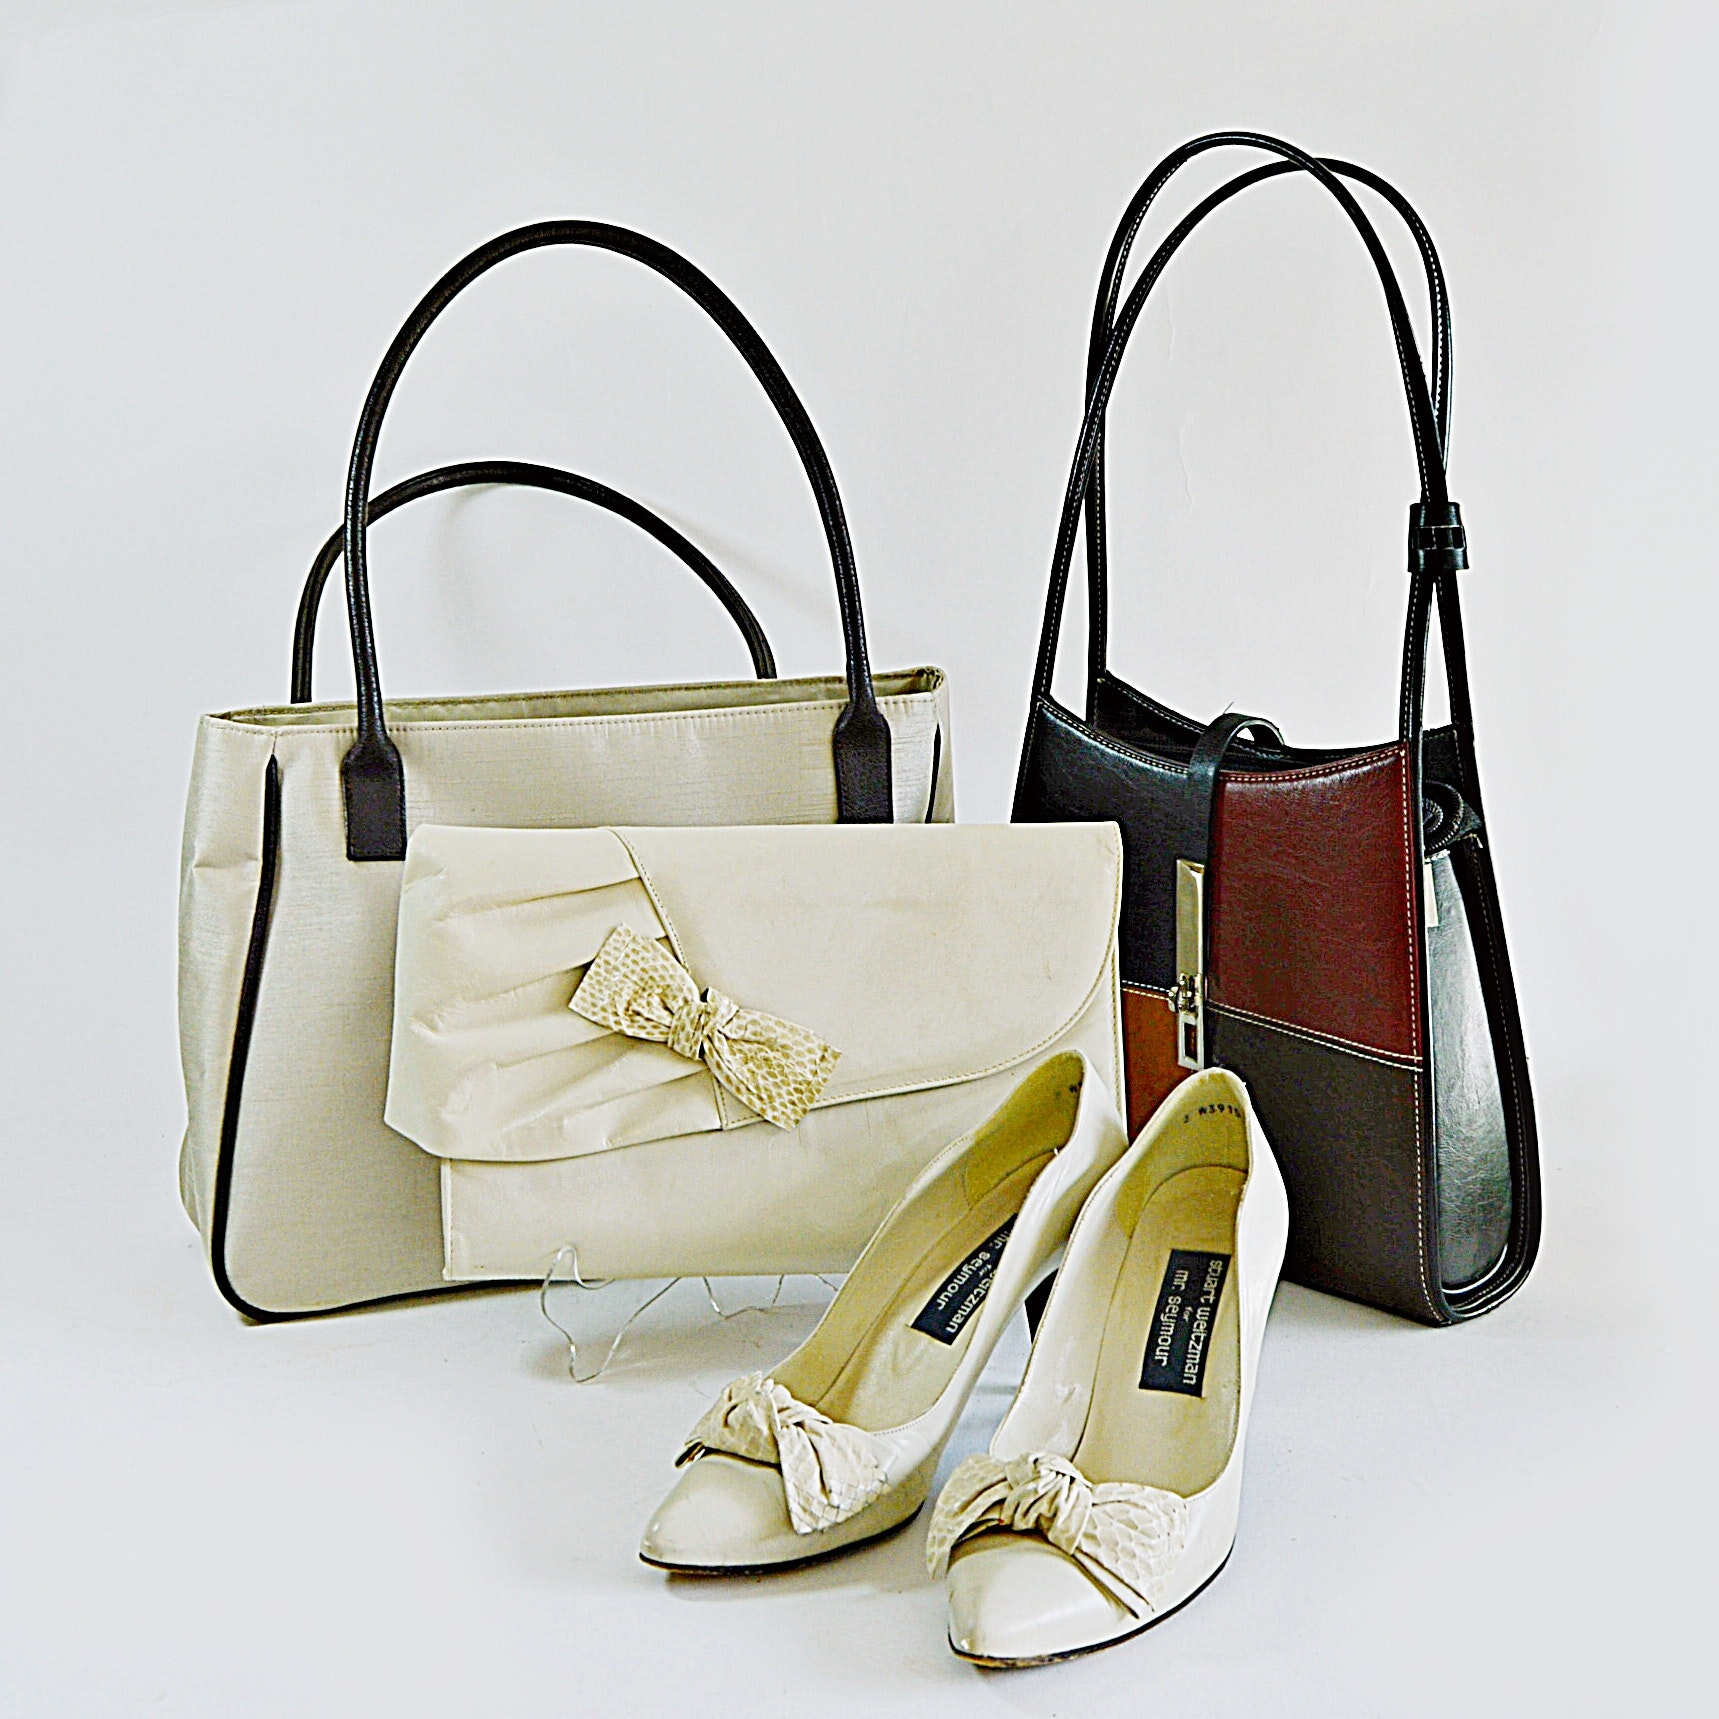 Three Purses, Shoes with Stuart Weitzman